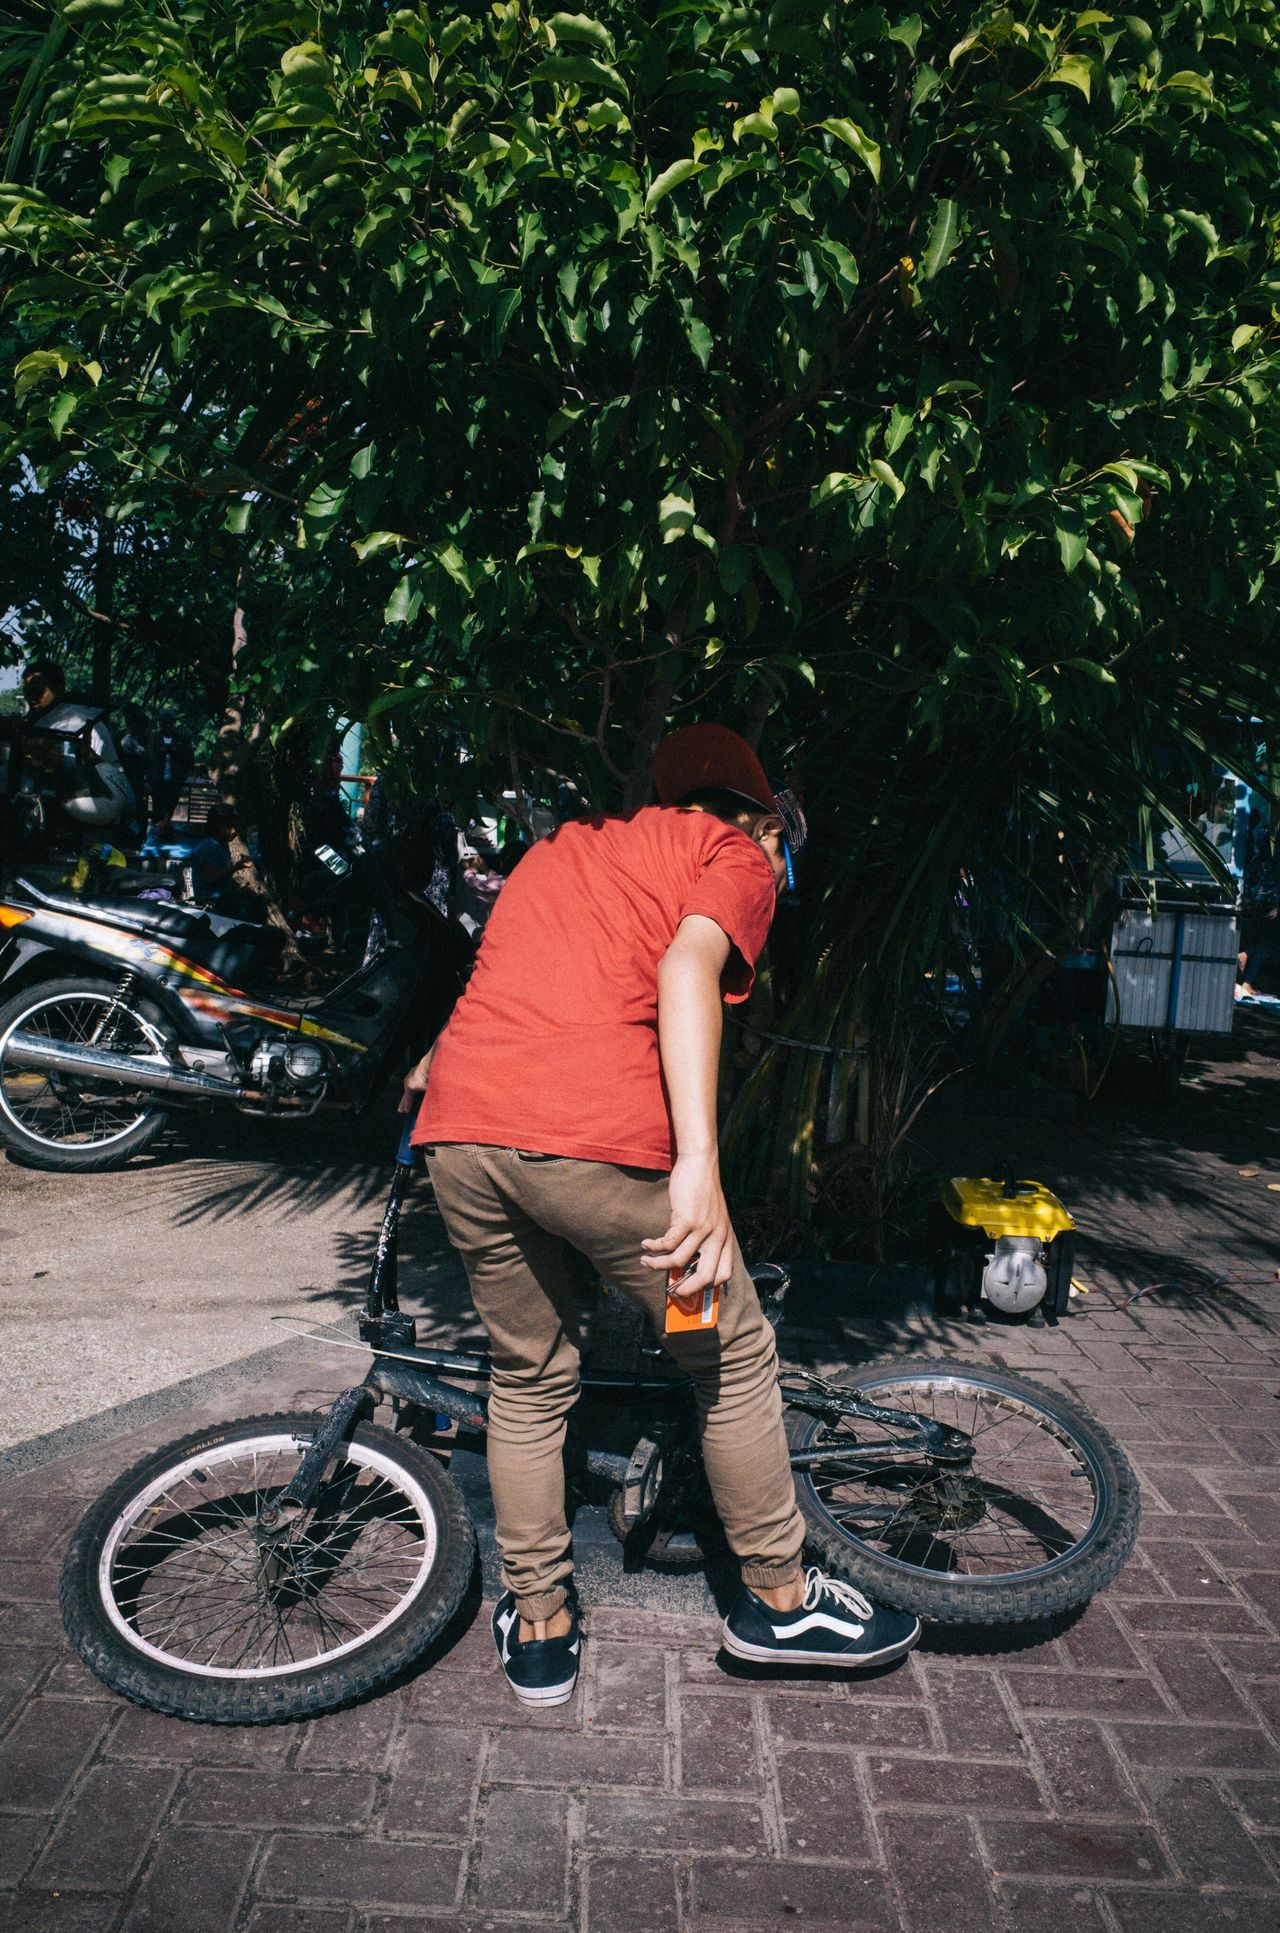 a boy in red and his bike Bicycle Cycling Transportation Mode Of Transport Casual Clothing Full Length Only Men One Man Only One Person Tree Riding Adult Outdoors Men Lifestyles Skill  Day Mountain Bike Real People Young Adult The Street Photographer - 2017 EyeEm Awards